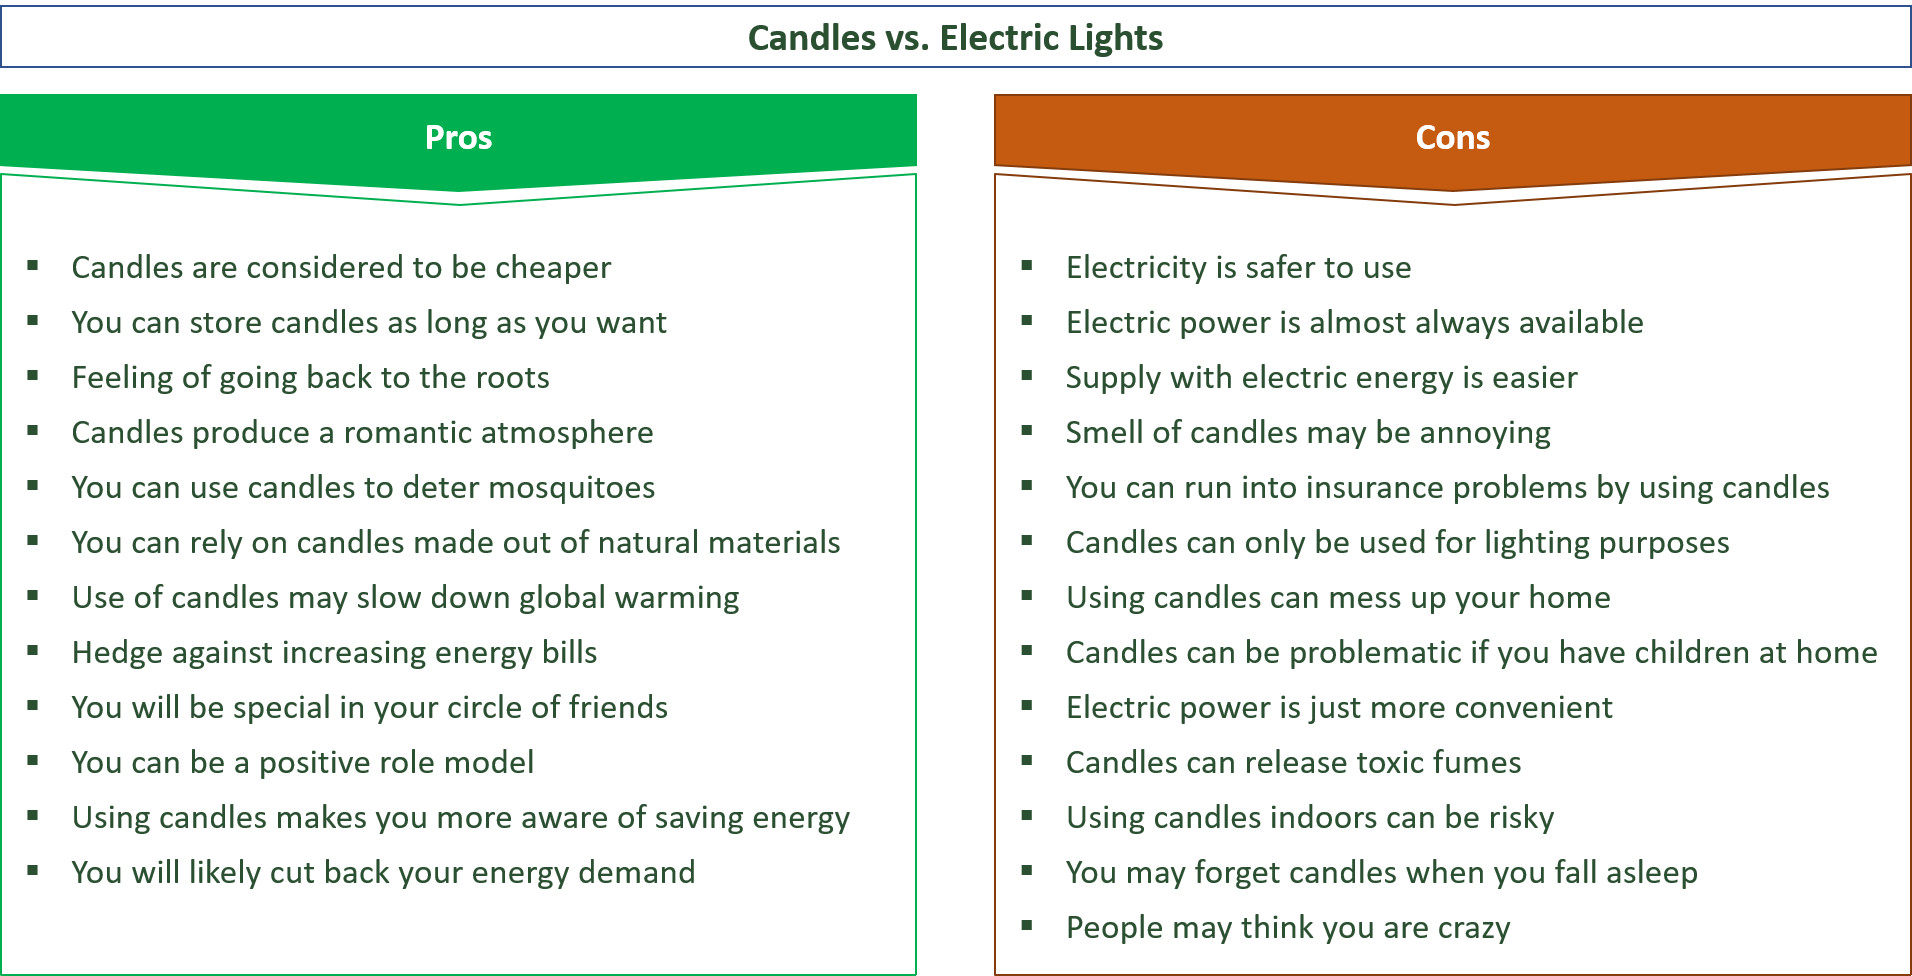 advantages and disadvantages of candles vs. electric lighting